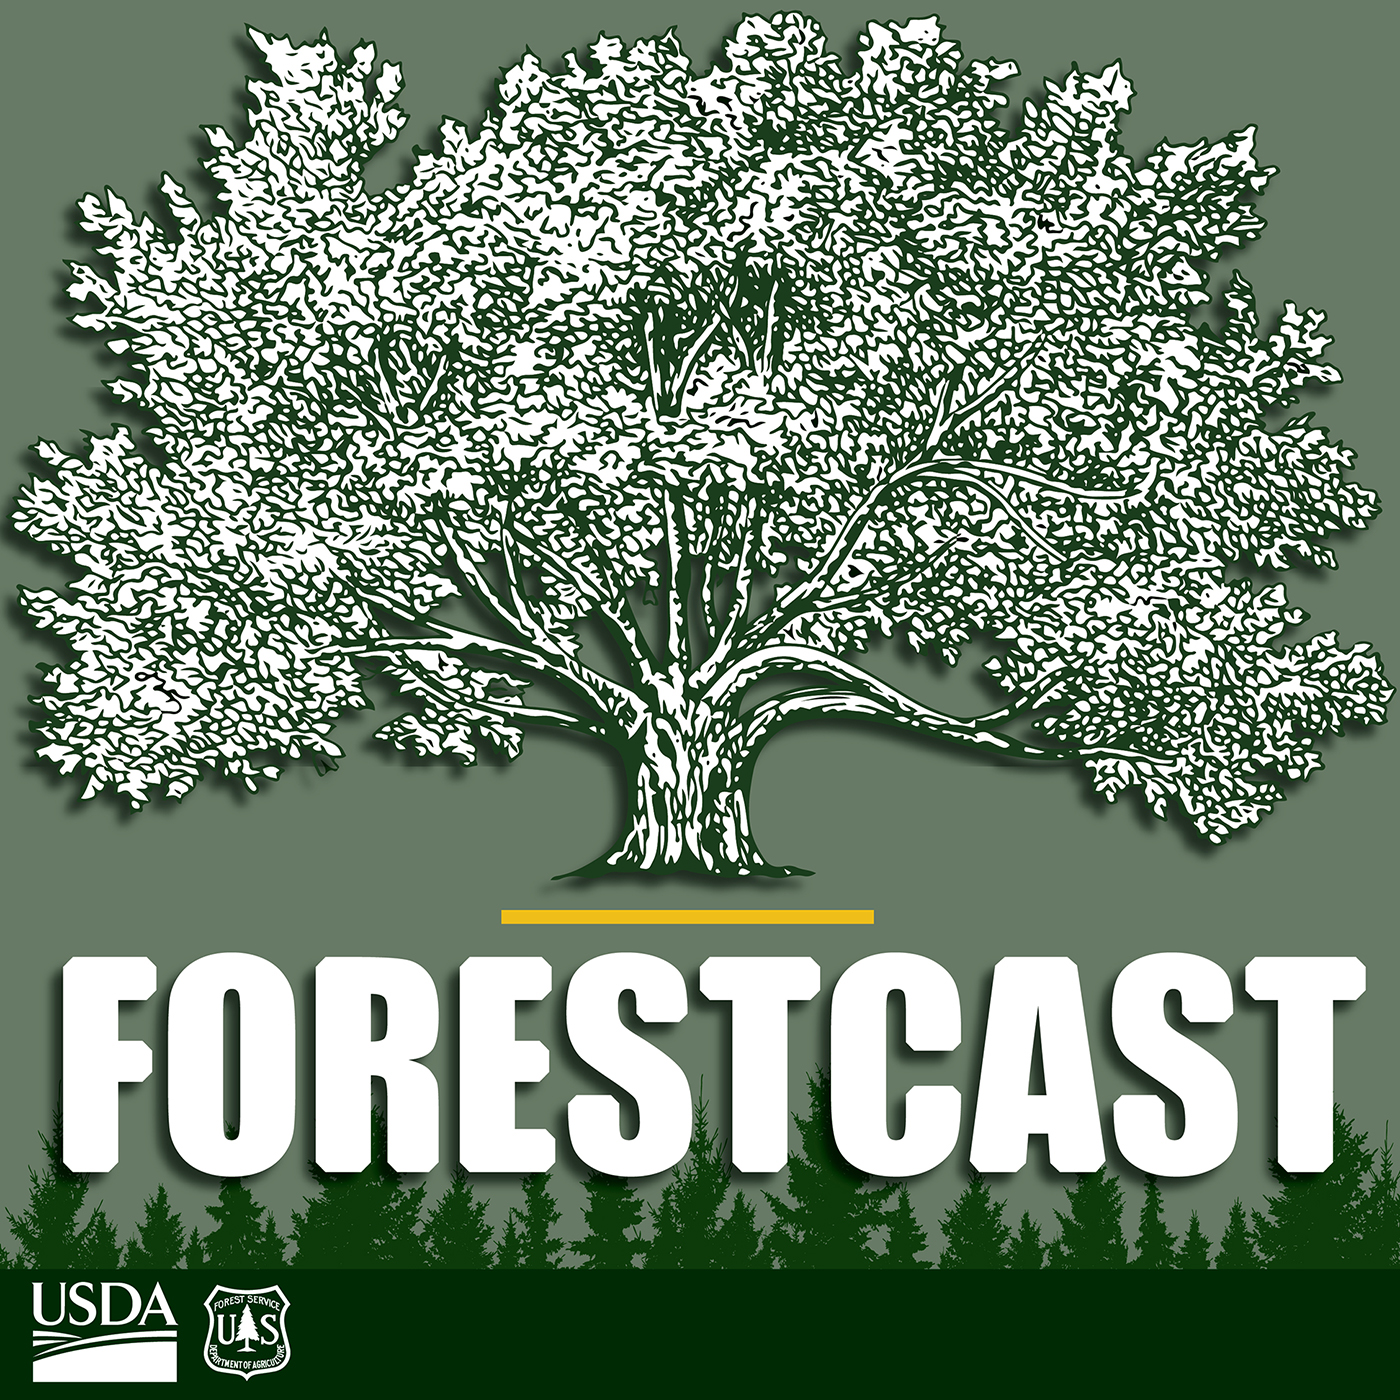 Forestcast